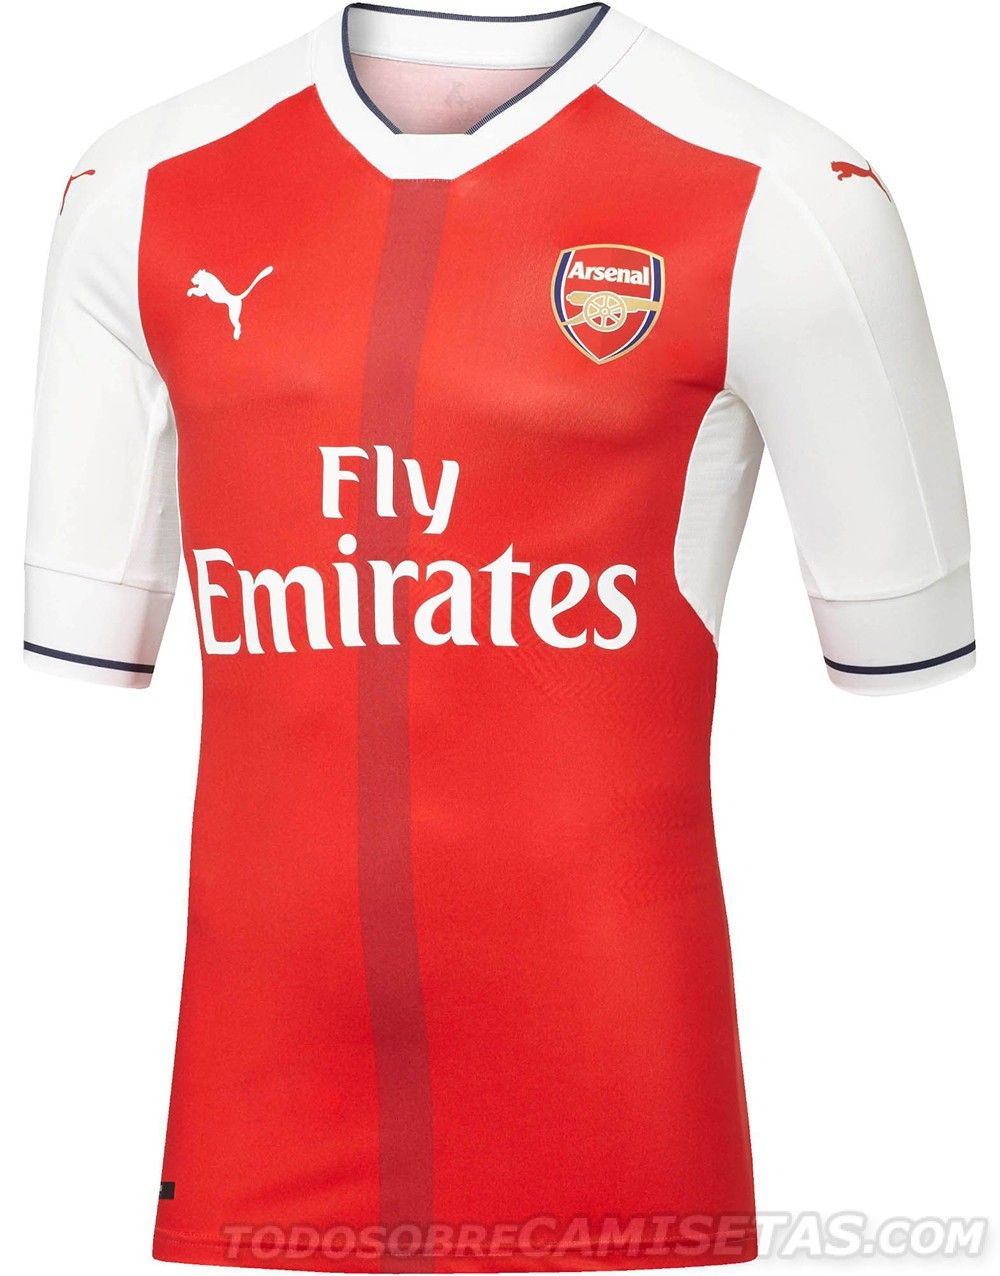 Arsenal 16 17 Puma Home Kit | Camisa de fútbol, Camisetas